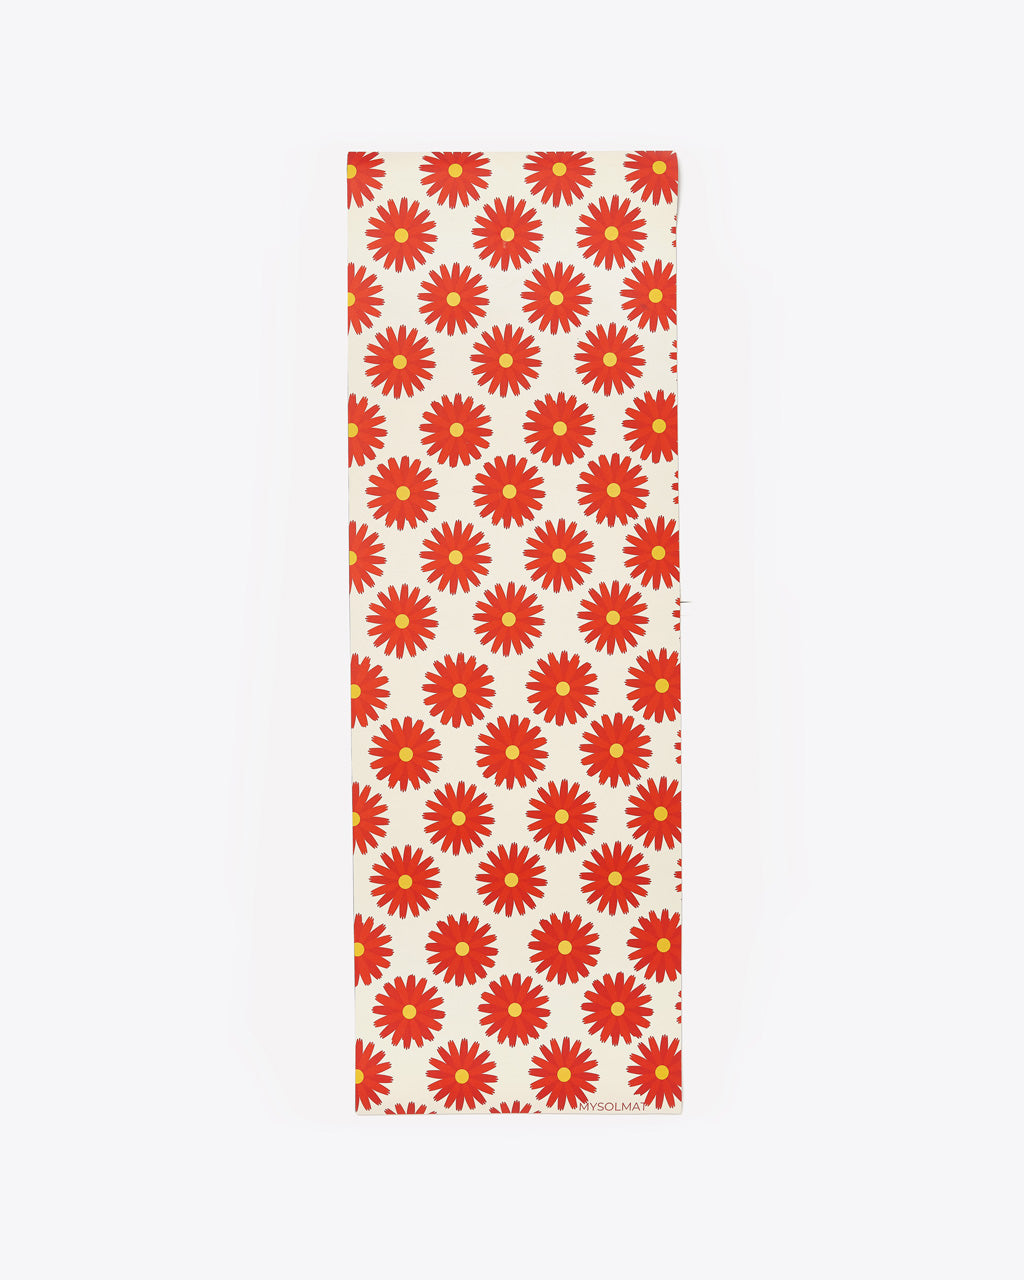 exercise mat with a red floral design all over